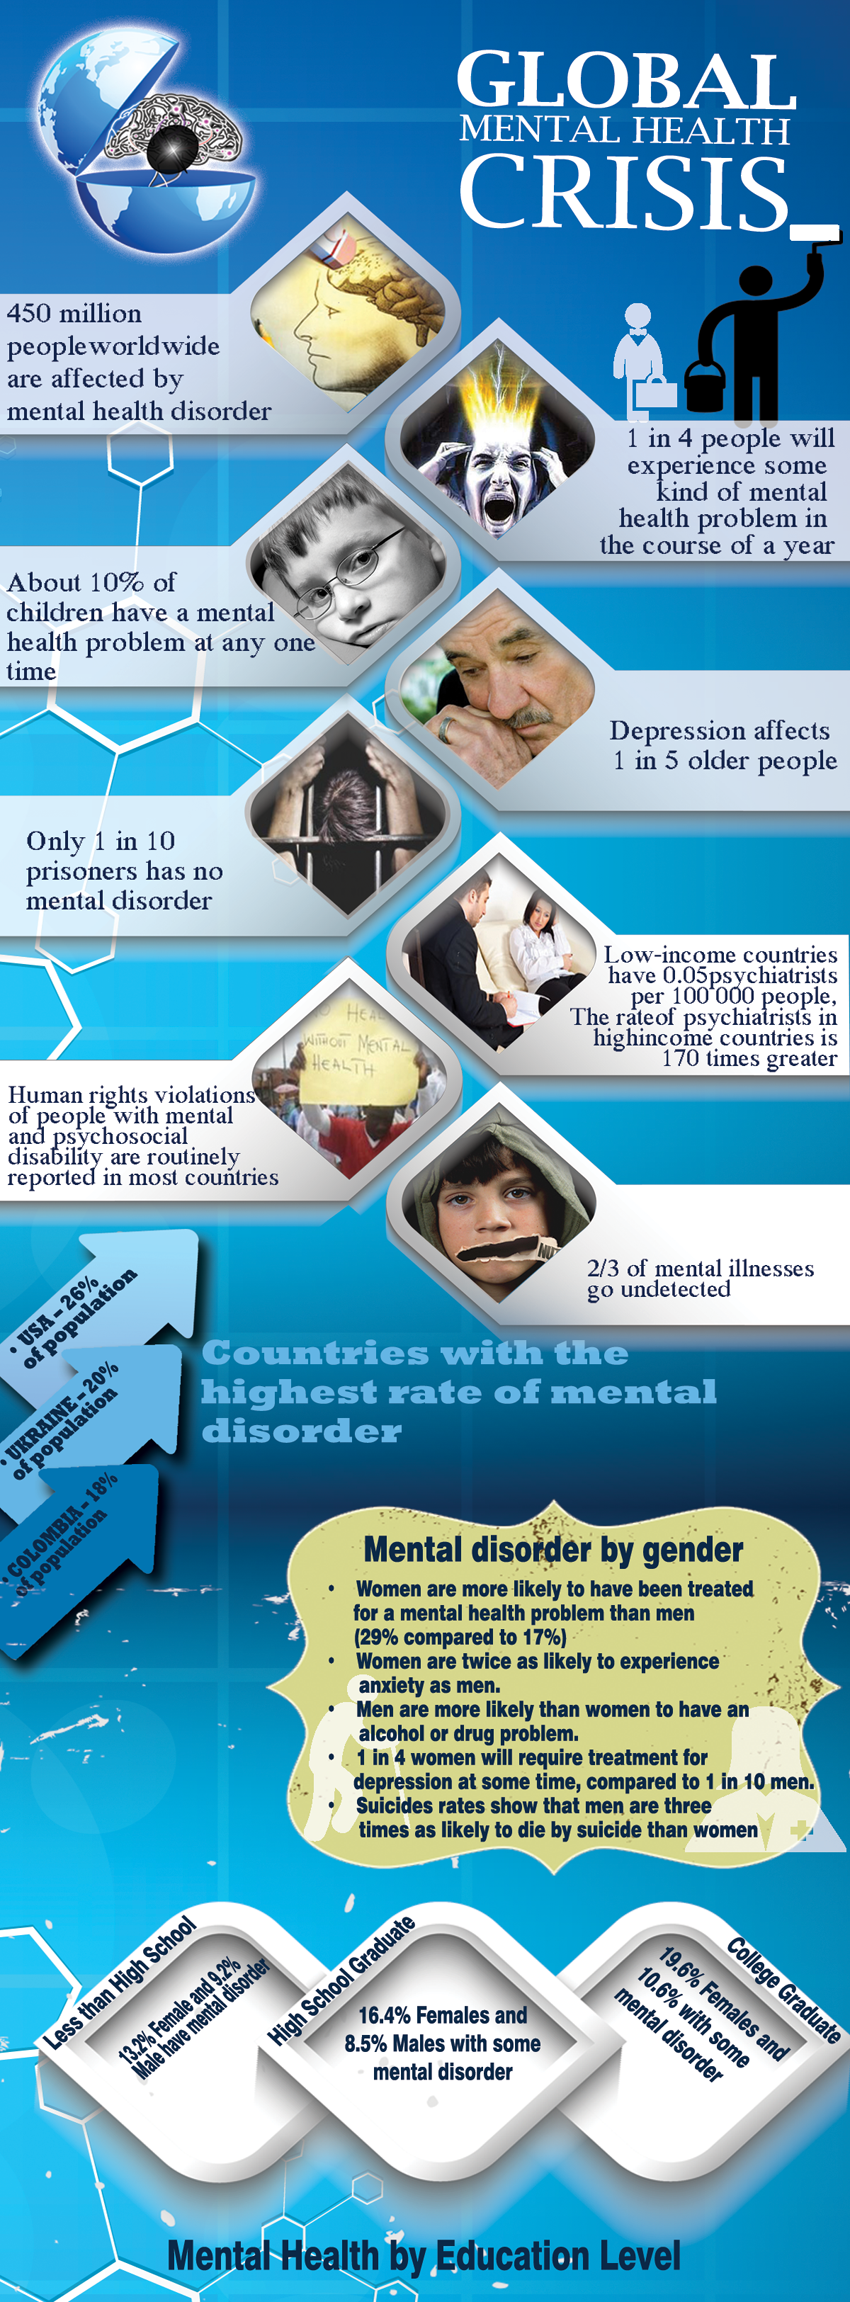 GLOBAL MENTAL HEALTH CRISIS [INFOGRAPHIC]